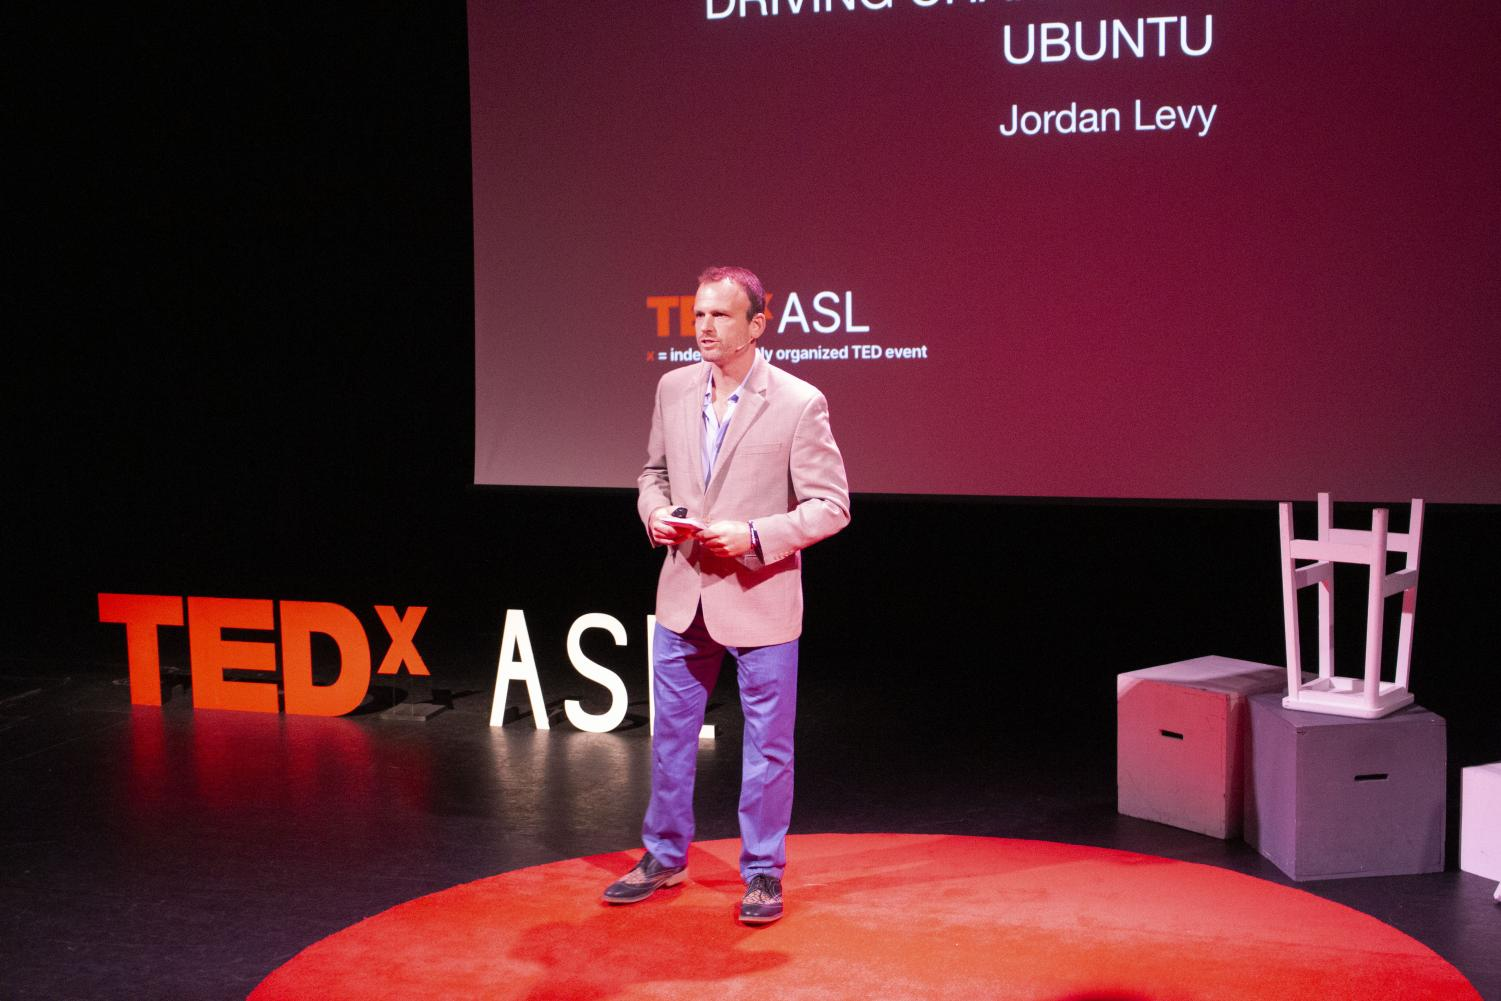 Jordan Levy speaks to the high school during the TEDxASL conference. He spoke about his experience with Ubuntu Pathways, a nonprofit organization who helps impoverished communities in South Africa.